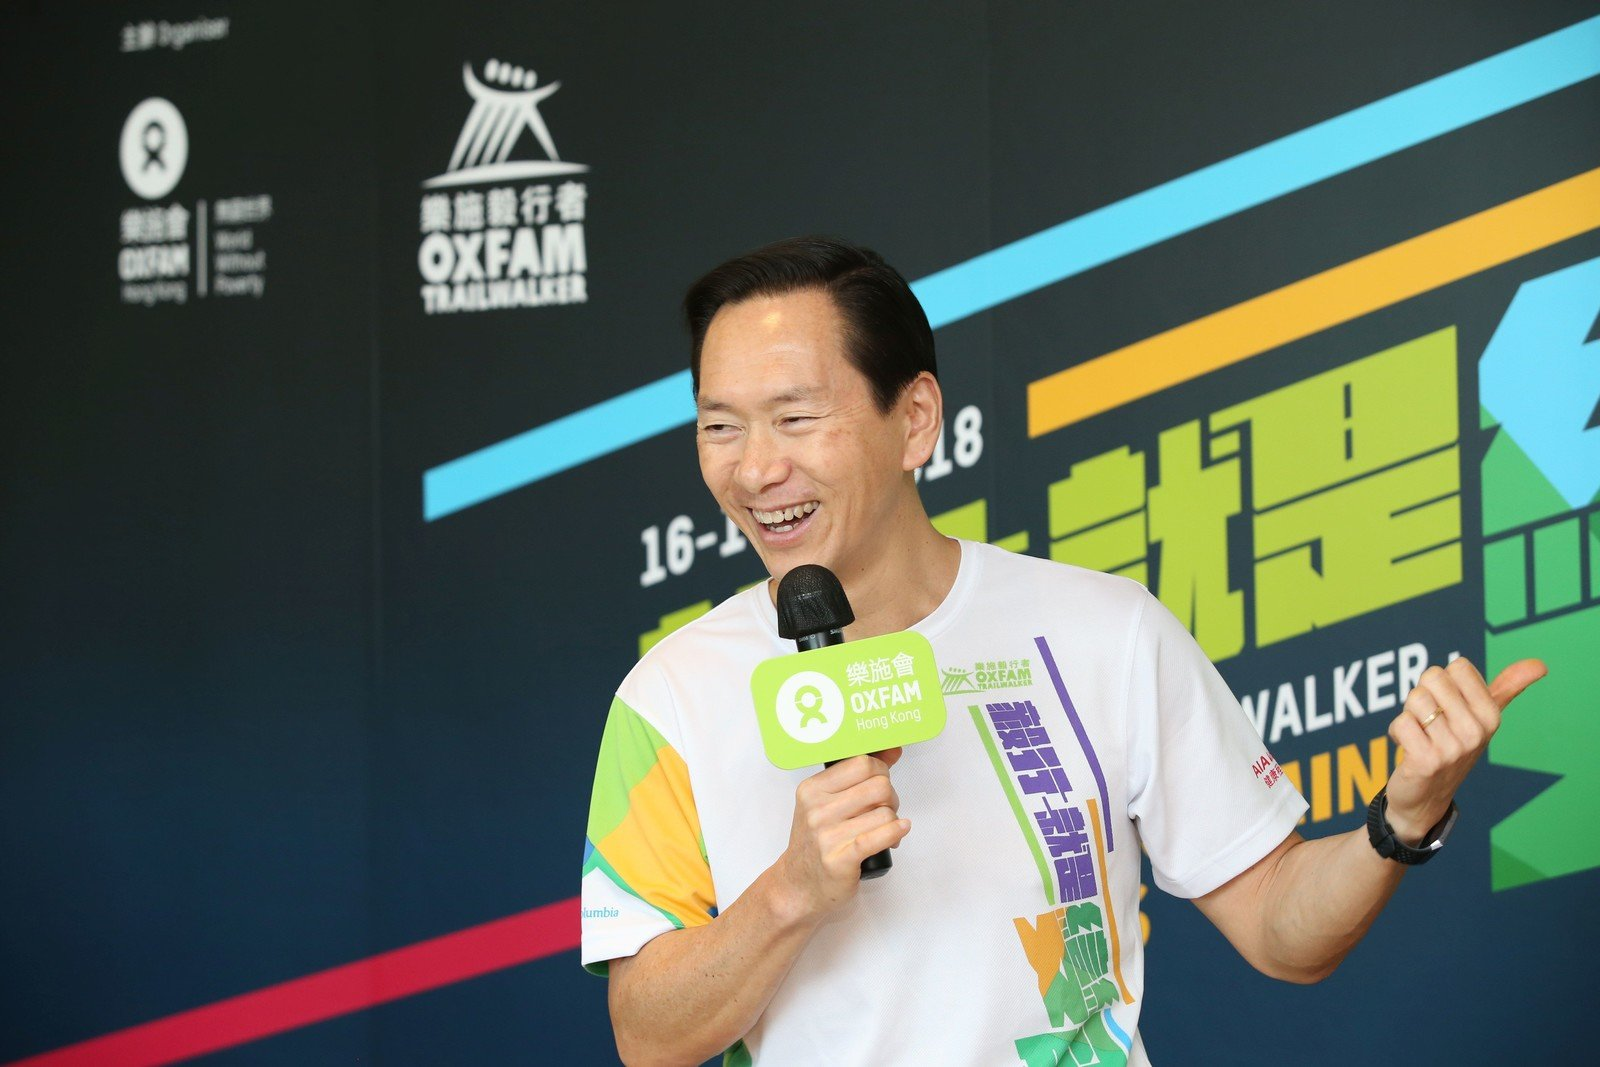 Bernard Chan, Chair of Oxfam Trailwalker Advisory Committee, giving the opening speech at the Oxfam Trailwalker 2018 press conference.